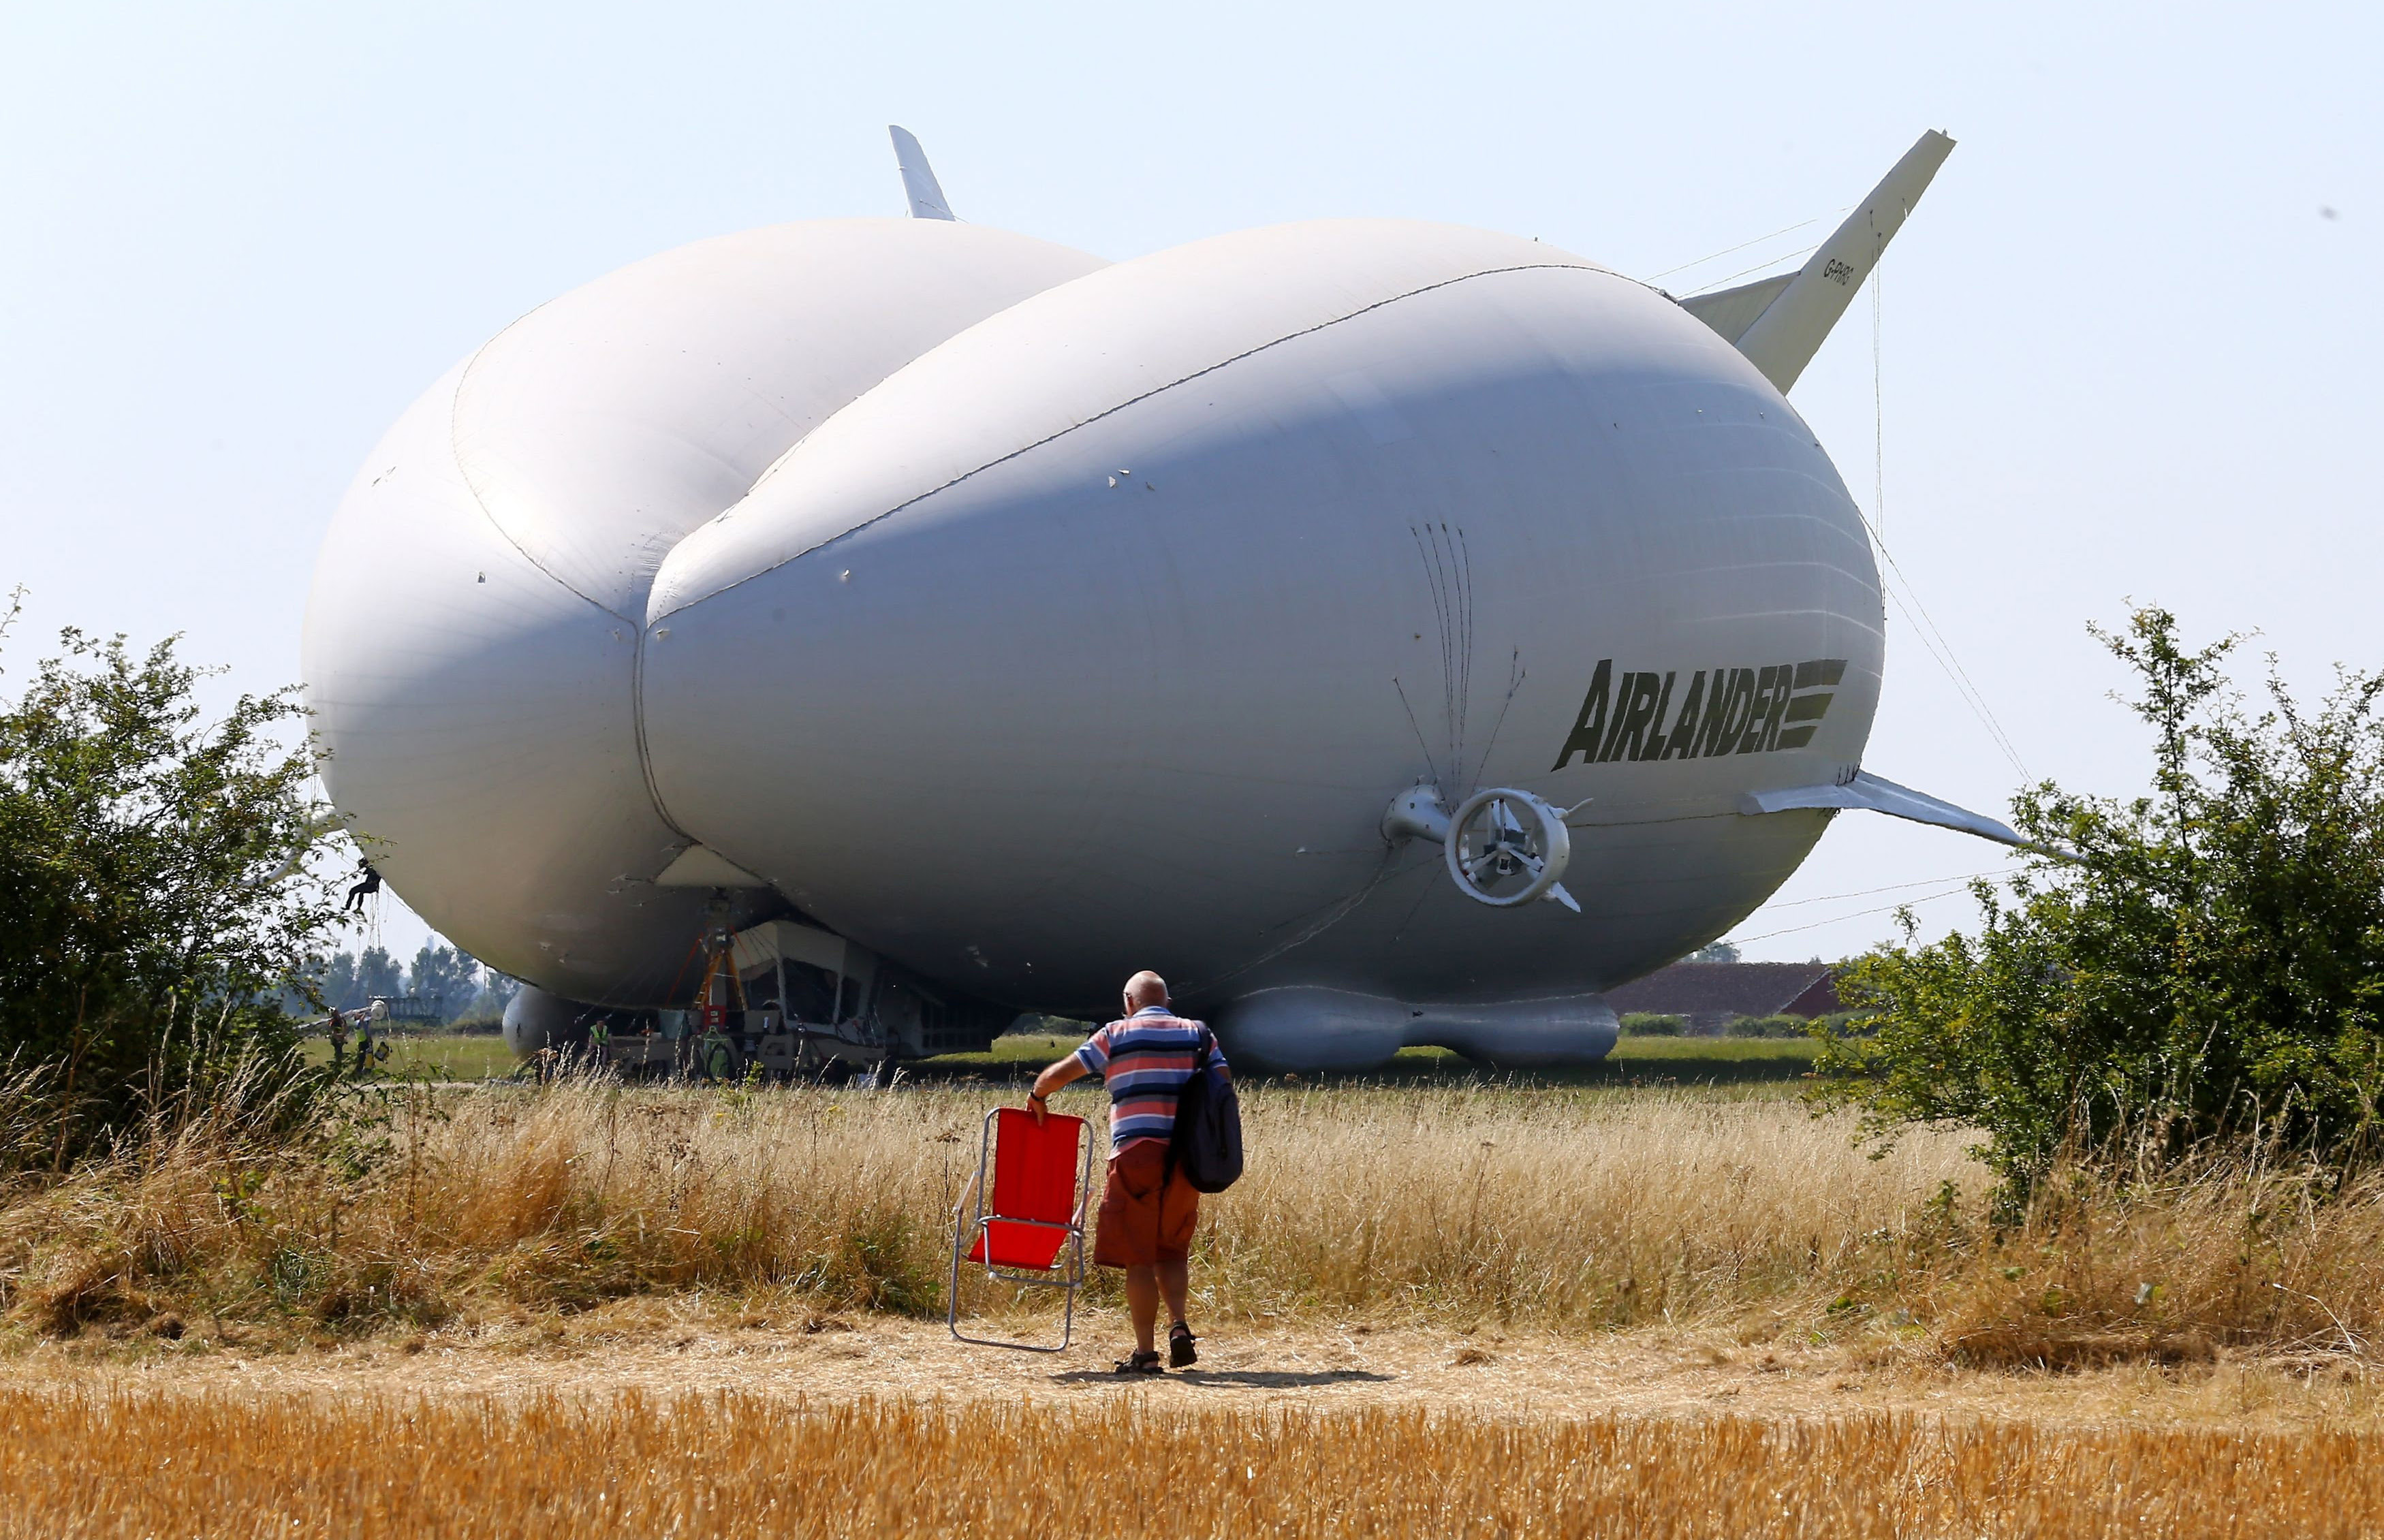 A man takes his seat as preparations are made for the maiden flight of the Airlander 10, the largest aircraft in the world, at Cardington airfield in Bedfordshire